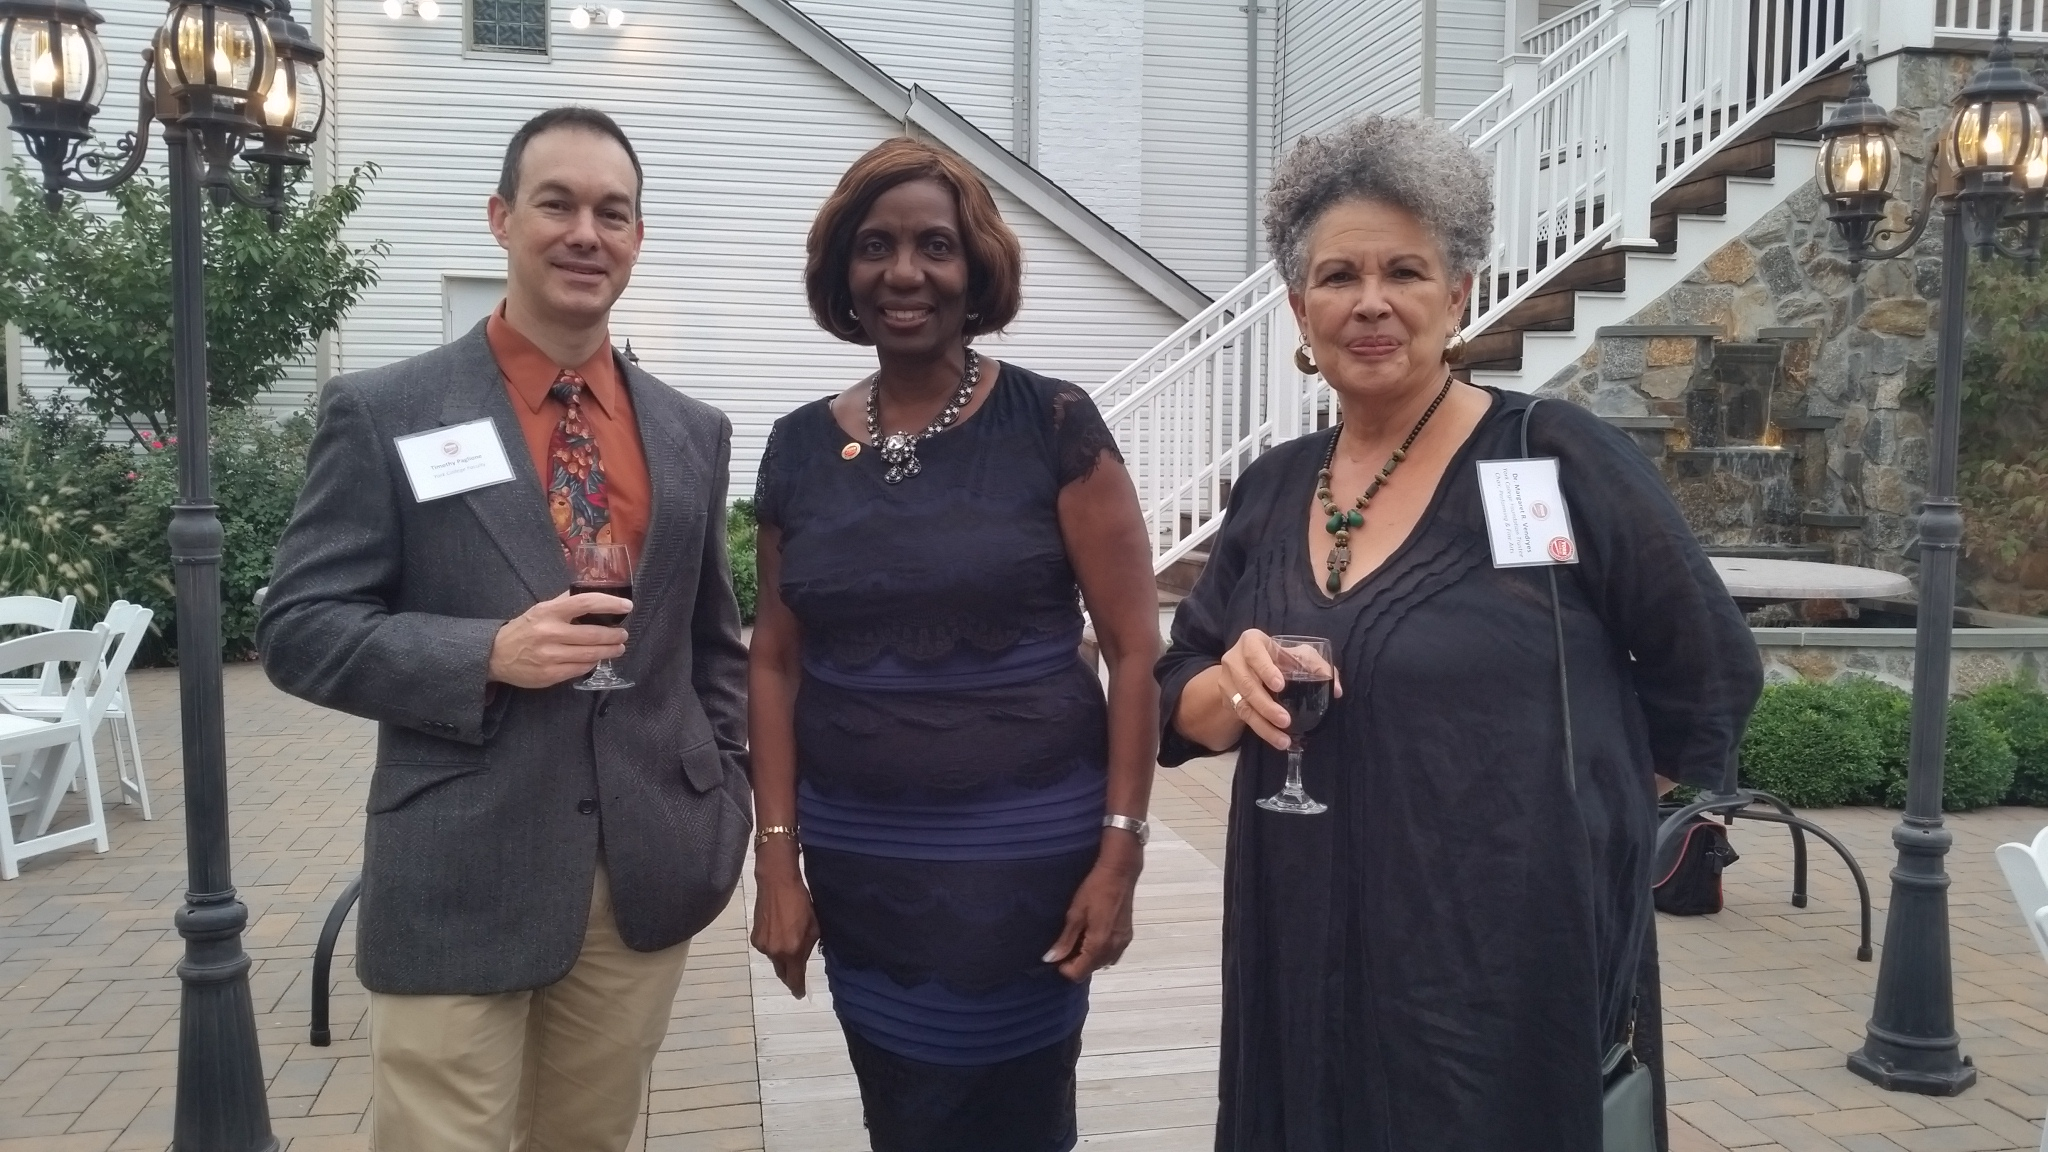 Dr. Tim A. Paglione, President Keizs & Dr. Margaret Vendryes